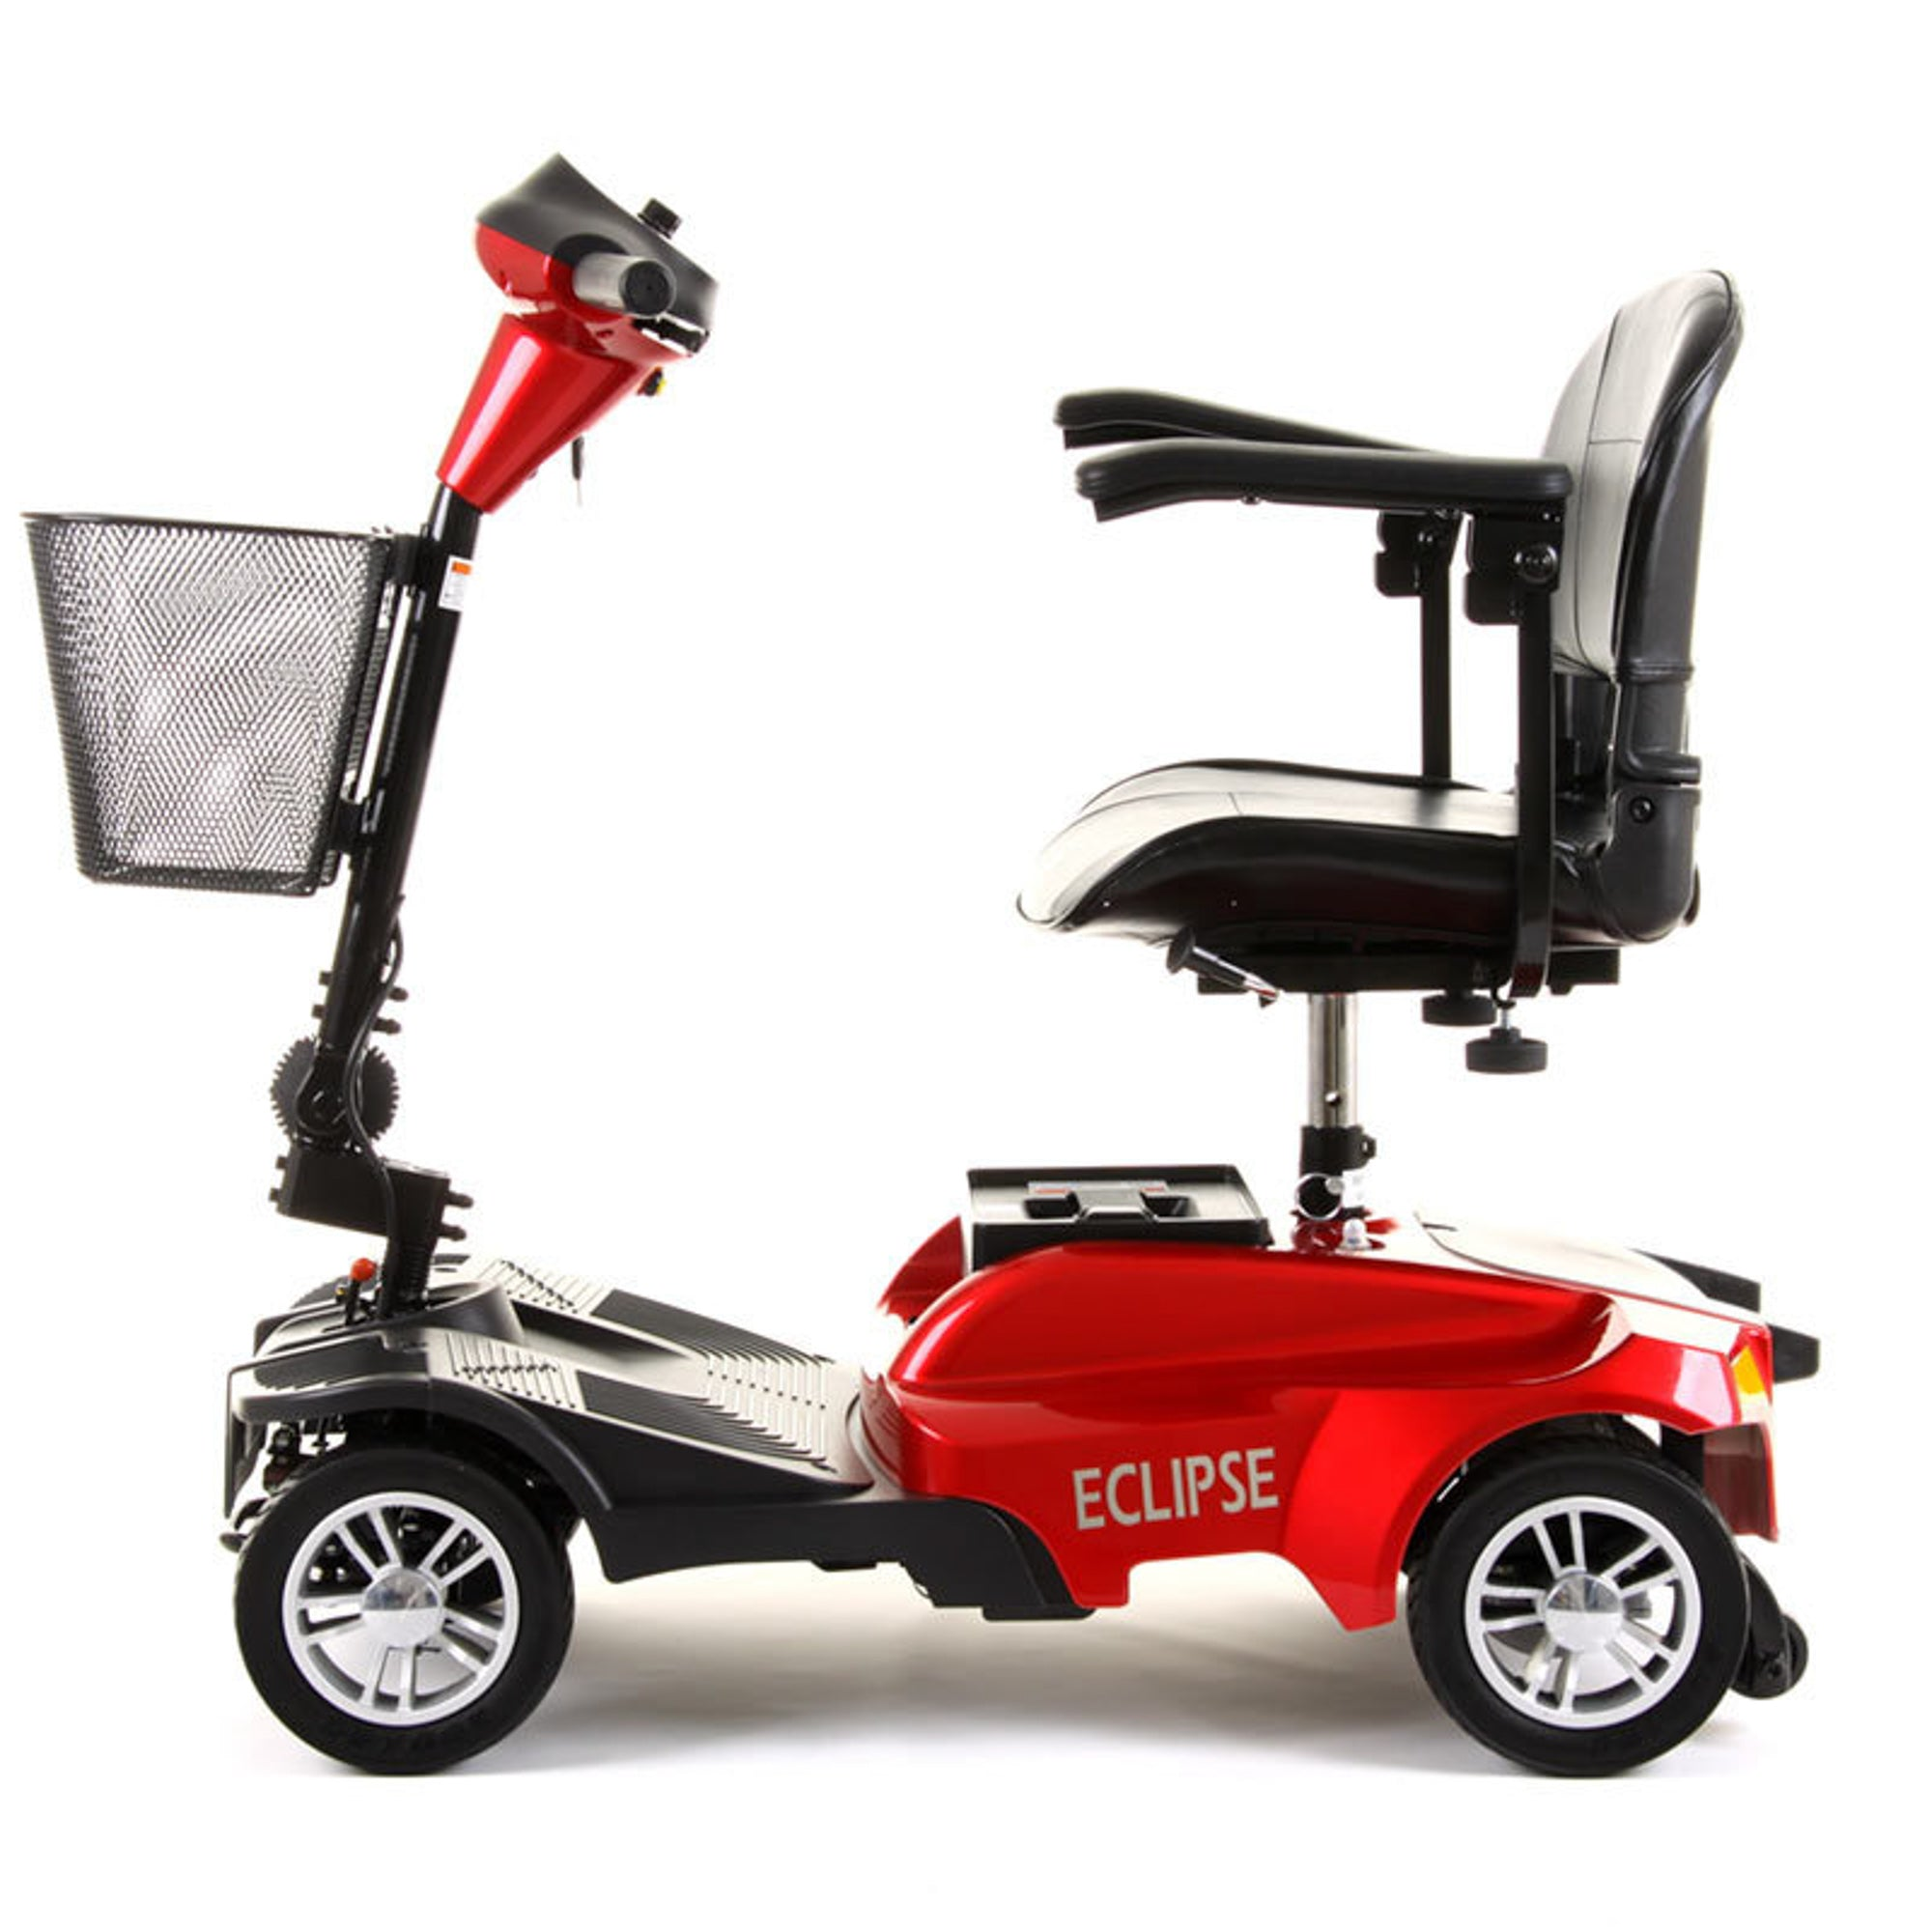 CareCo Eclipse Travel Boot Electric Mobility Scooter Small